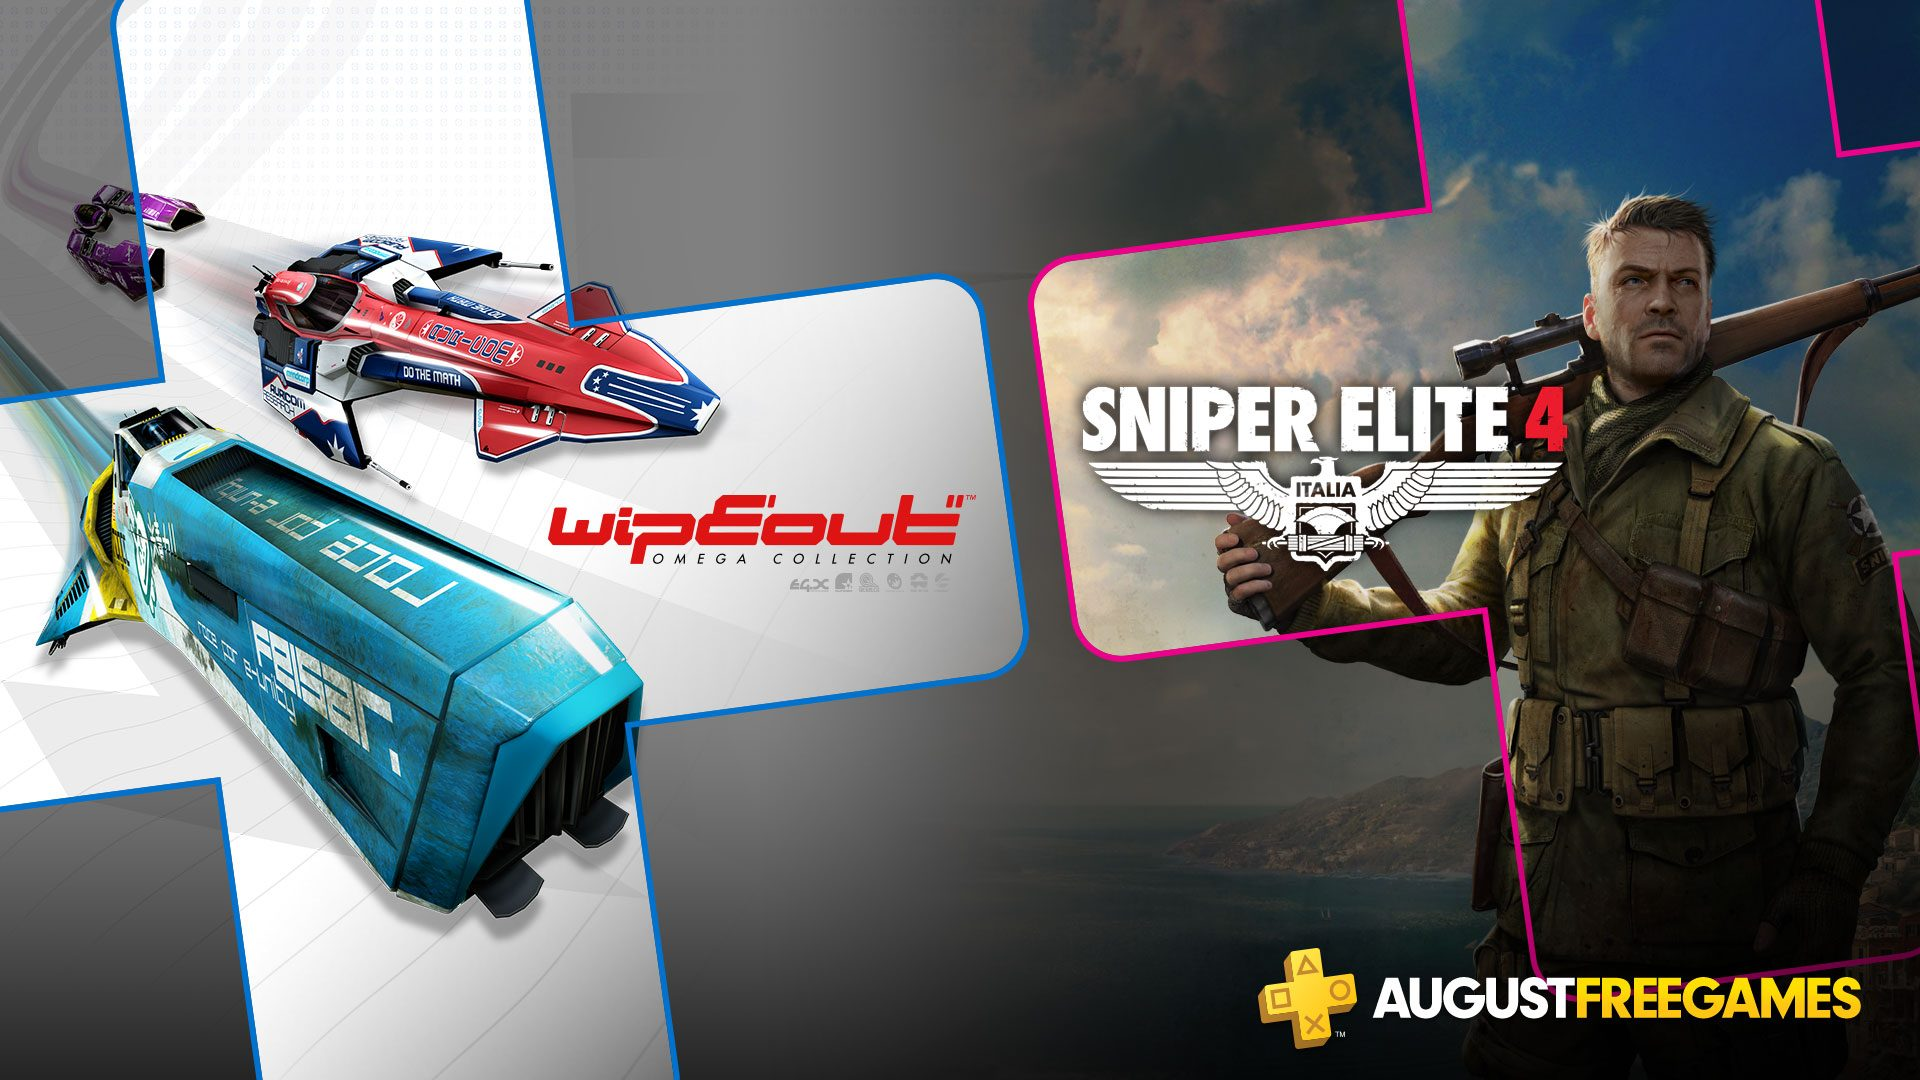 Playstation Plus | WipEout Omega Collection e Sniper Elite 4 são os games da PS Plus de agosto